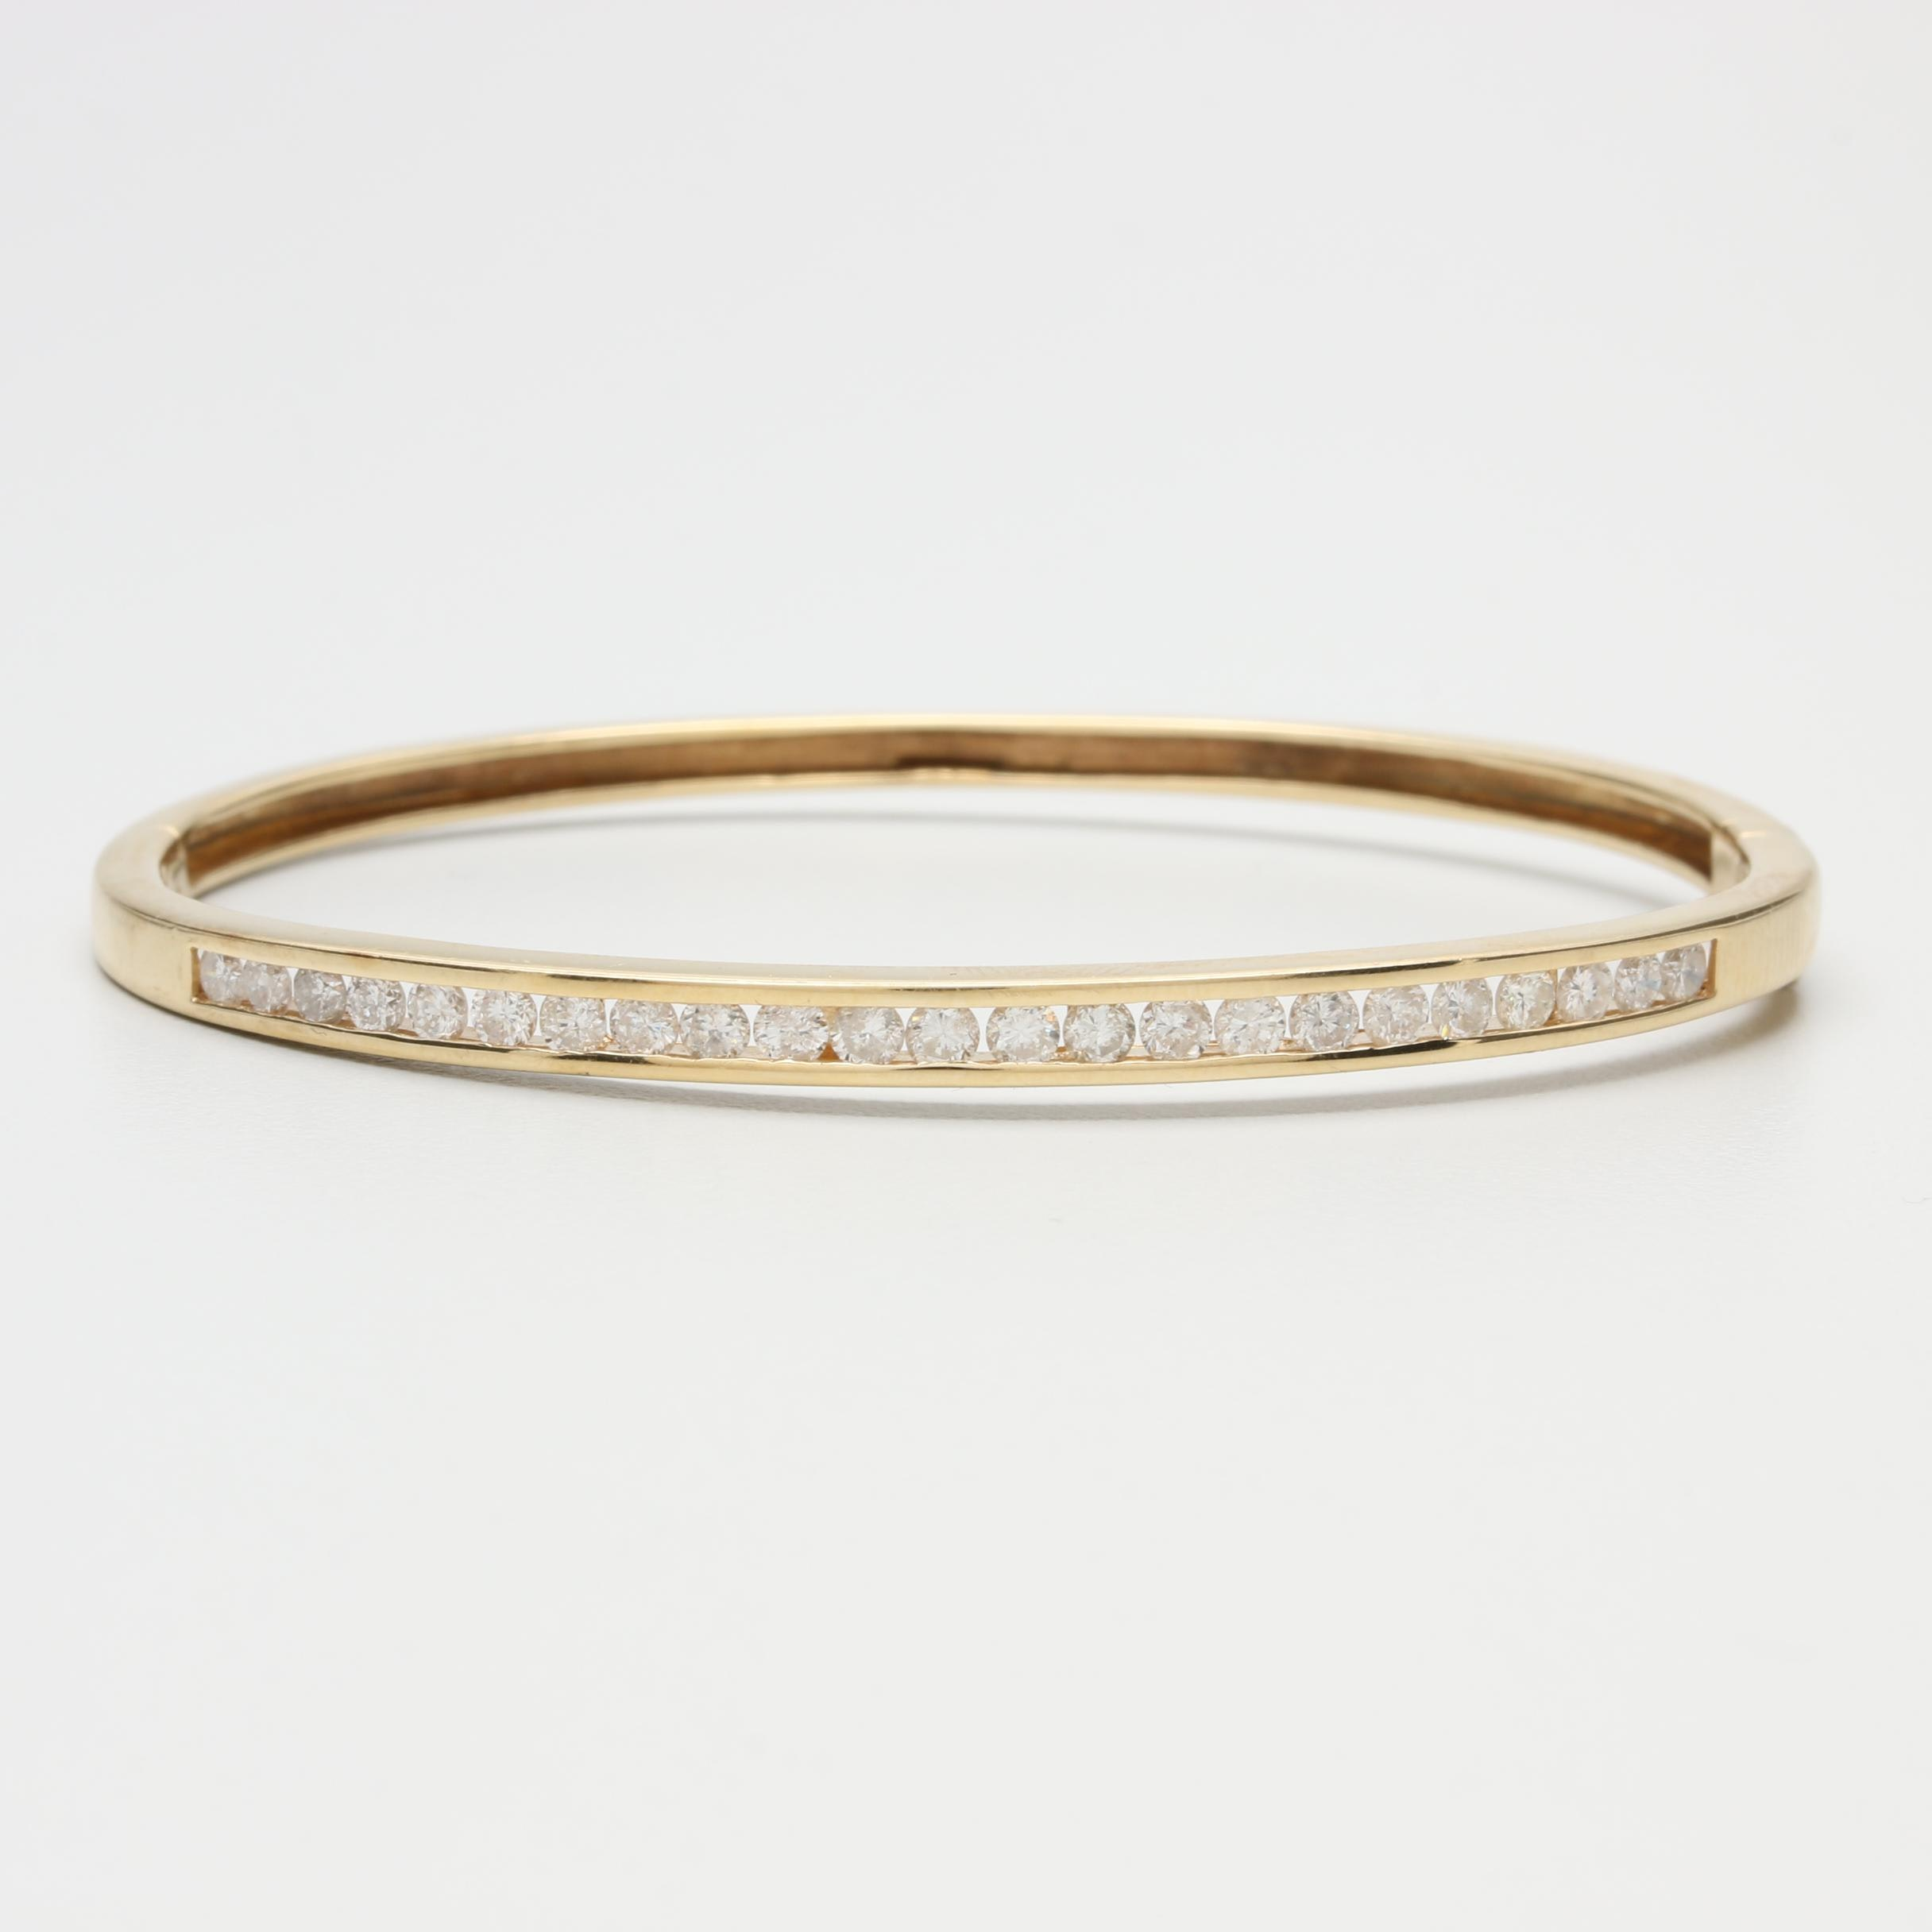 14K Yellow Gold 1.26 CTW Diamond Bracelet